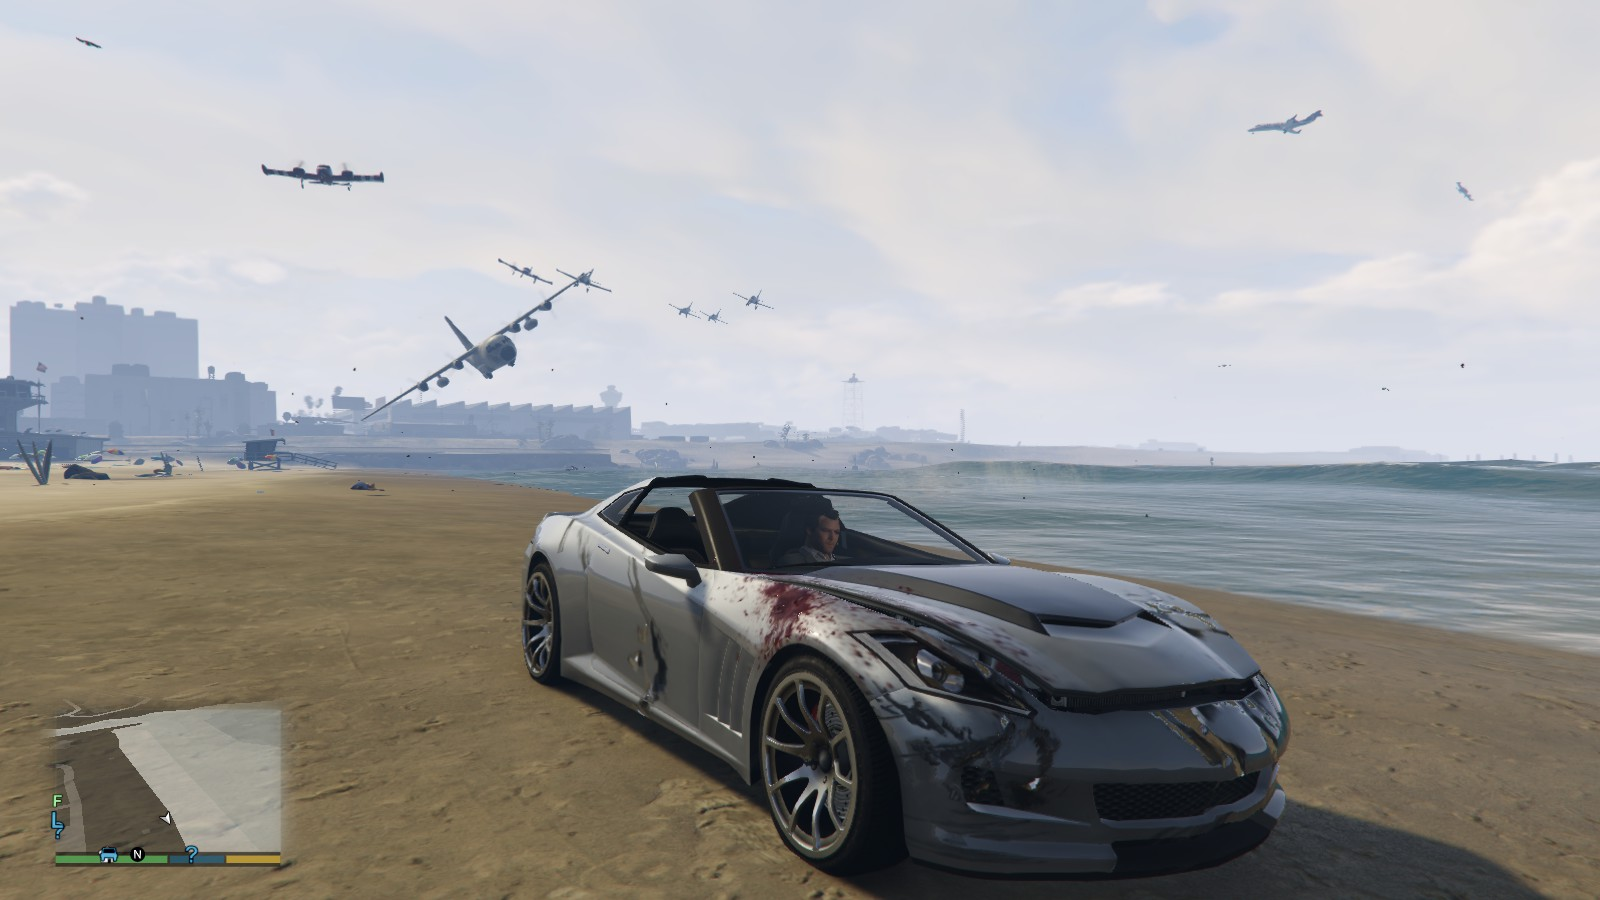 GTA 5 mods Angry Planes and No Clip contain malware | PC Gamer